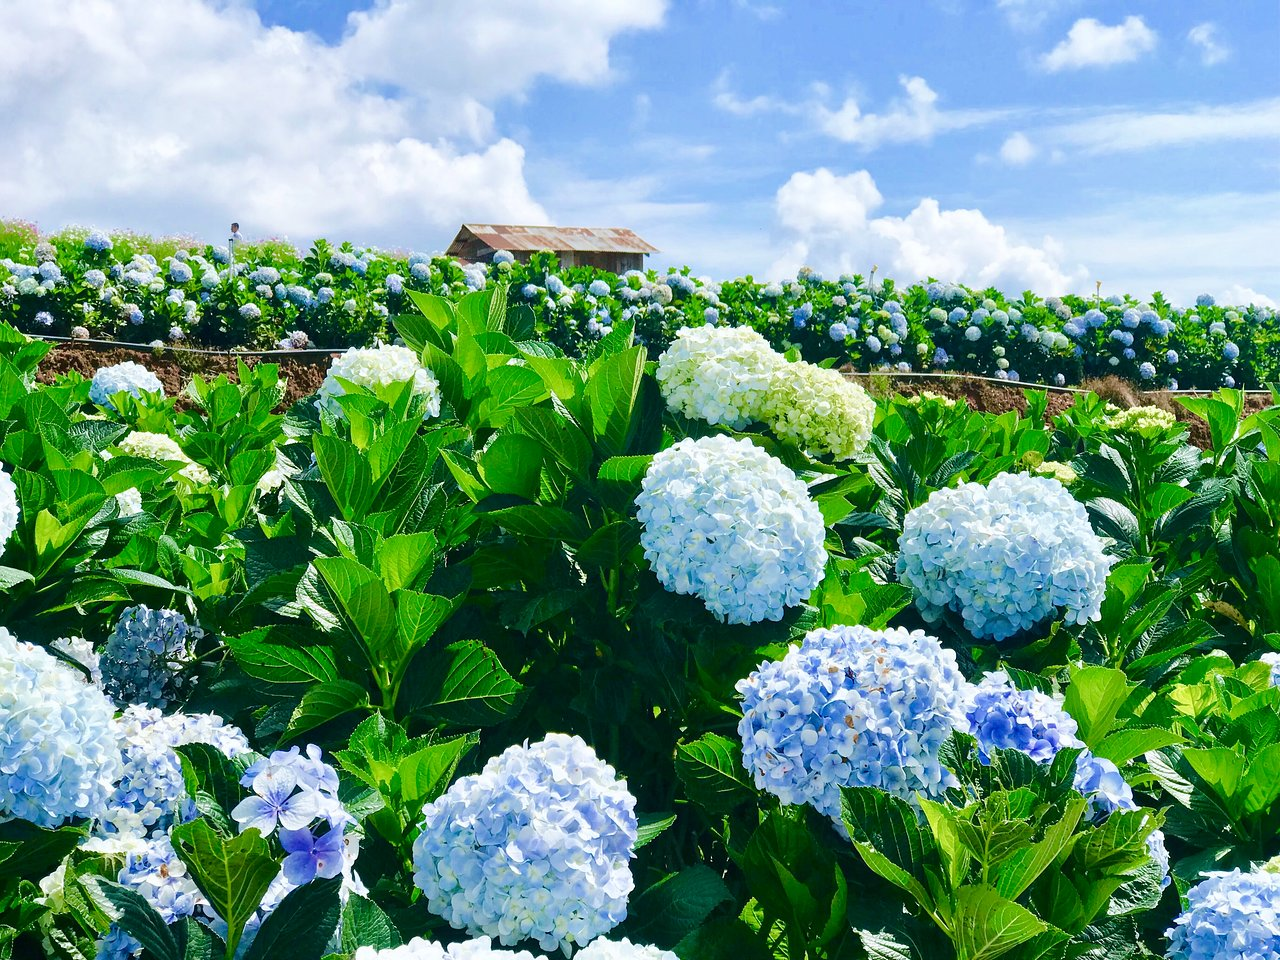 Garden Hydrangeas Da Lat 2020 All You Need To Know Before You